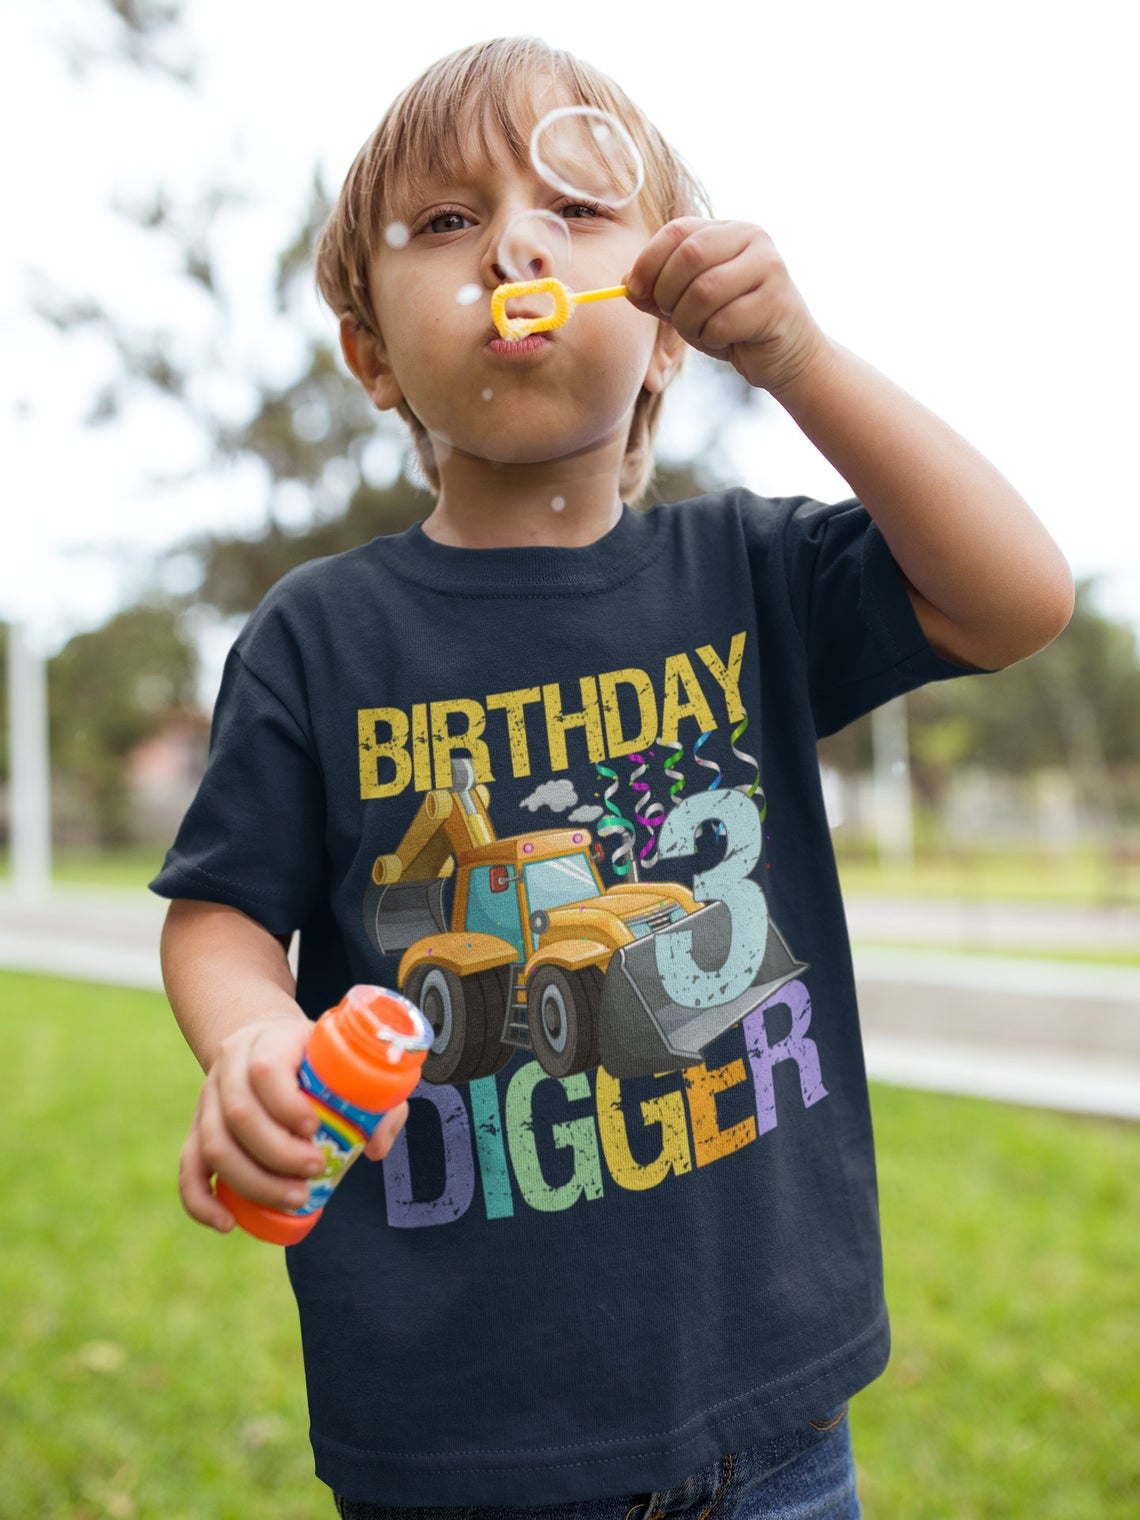 3rd Birthday Construction Digger Truck Shirt For Boys, 3 Year Old Party Tshirt